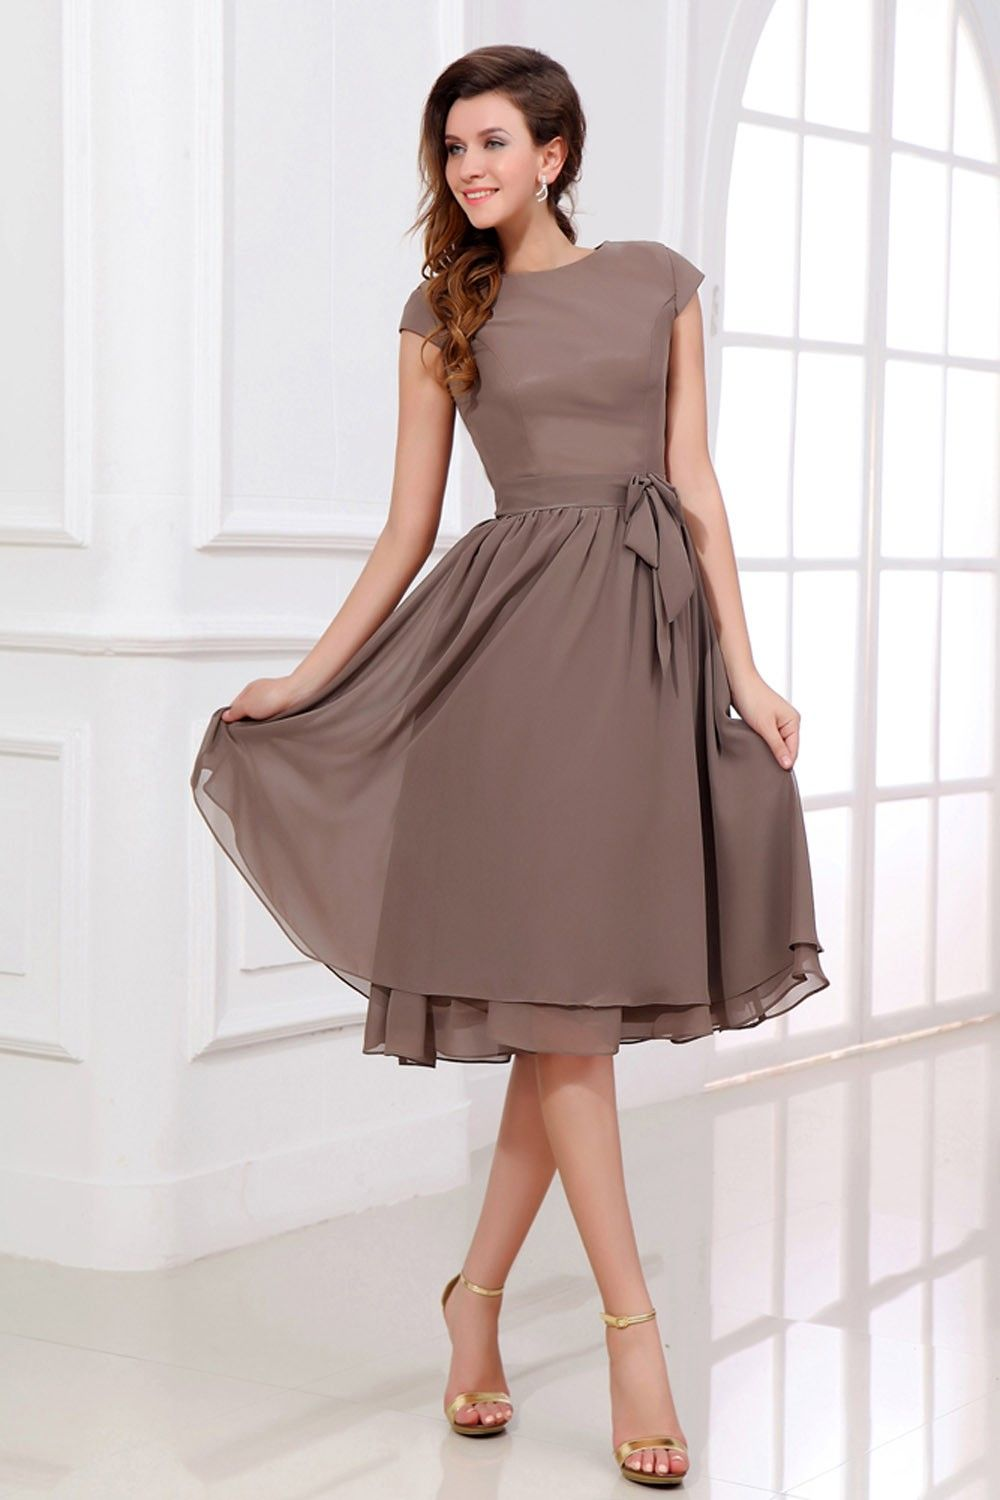 2f07280370 Lovely bridesmaid dress !!! This mommomc.`s dress to wear at my ...